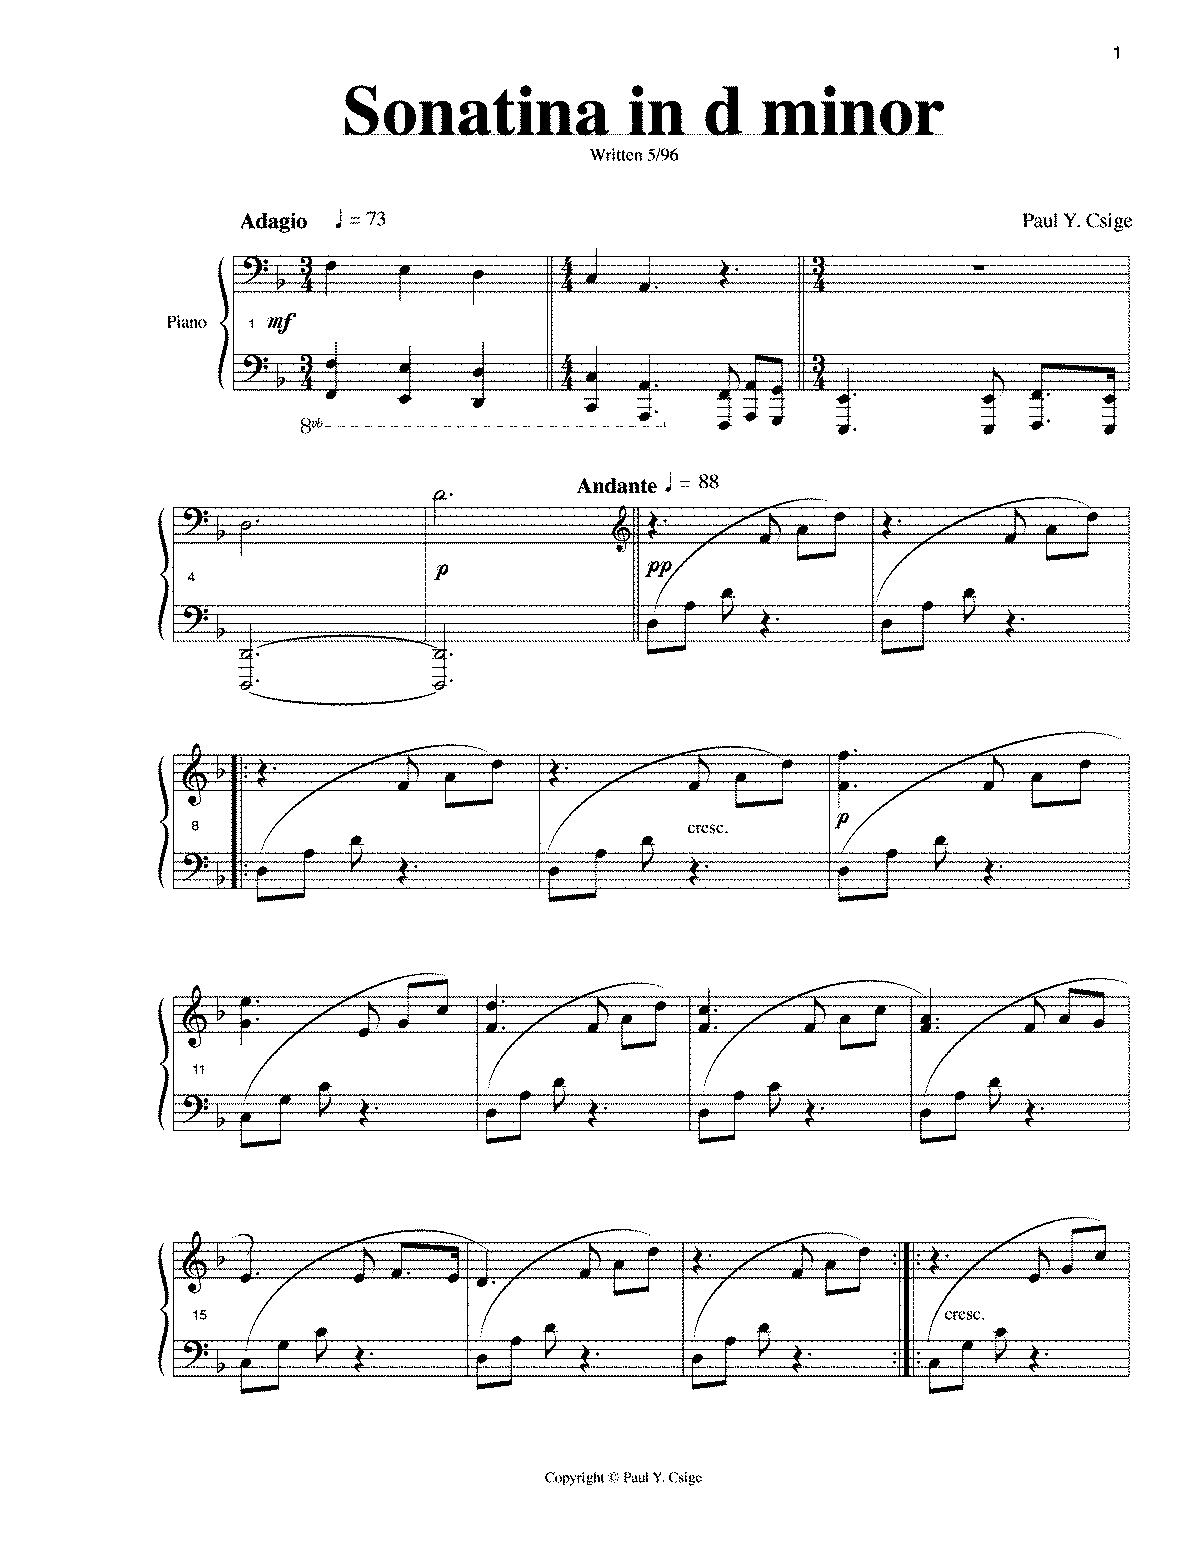 PMLP144077-Sonatina d minor.pdf